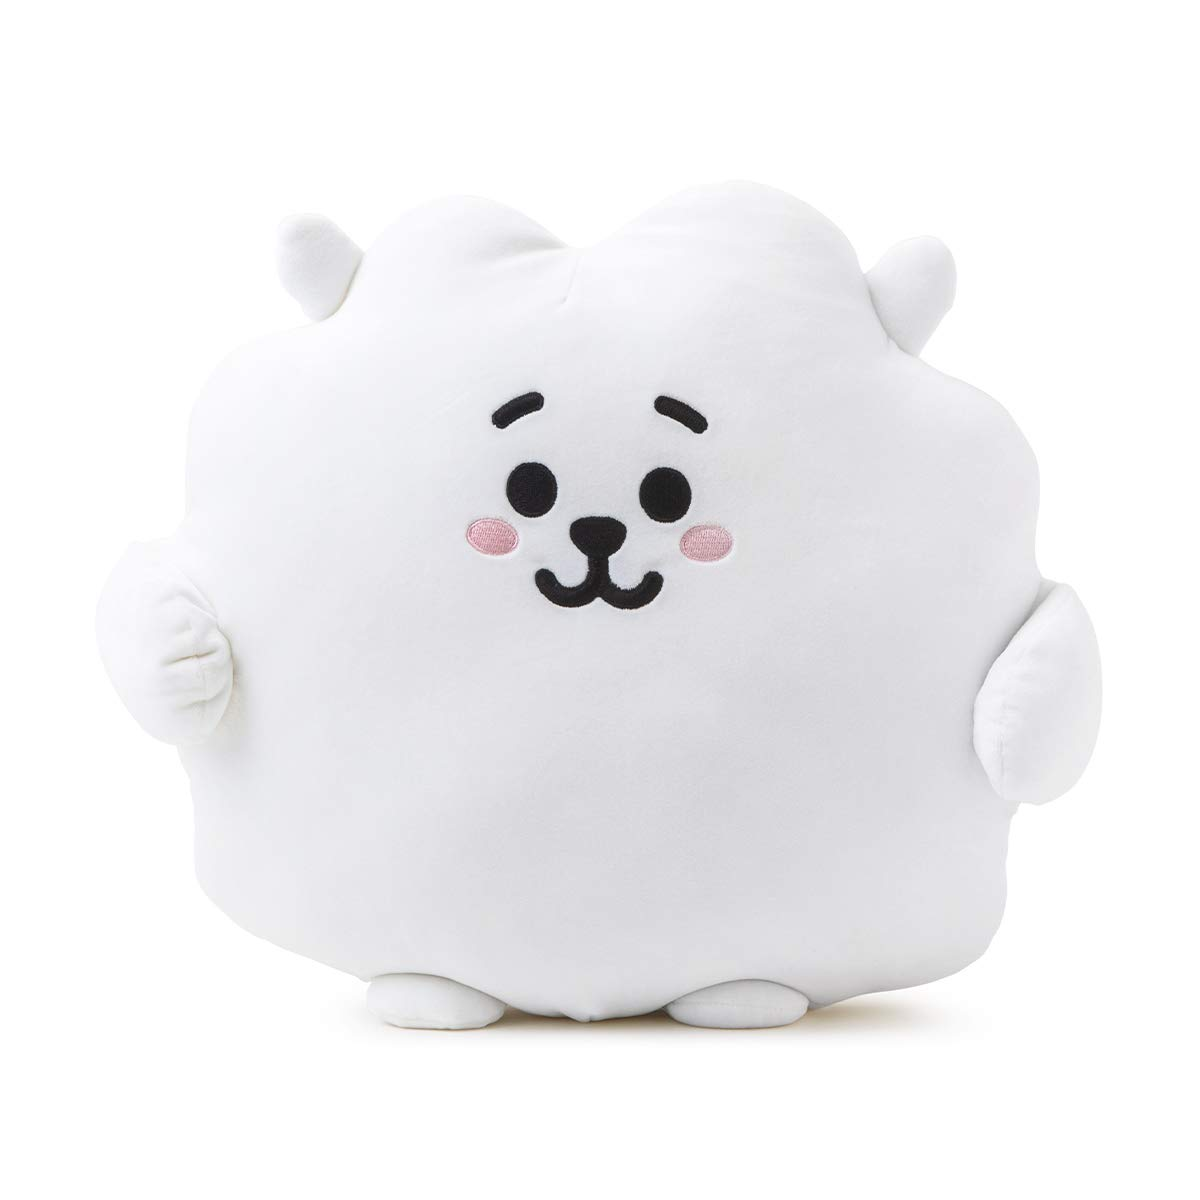 BT21 Official Merchandise by Line Friends - RJ Character Pong Pong Cushion 11.8 Inches